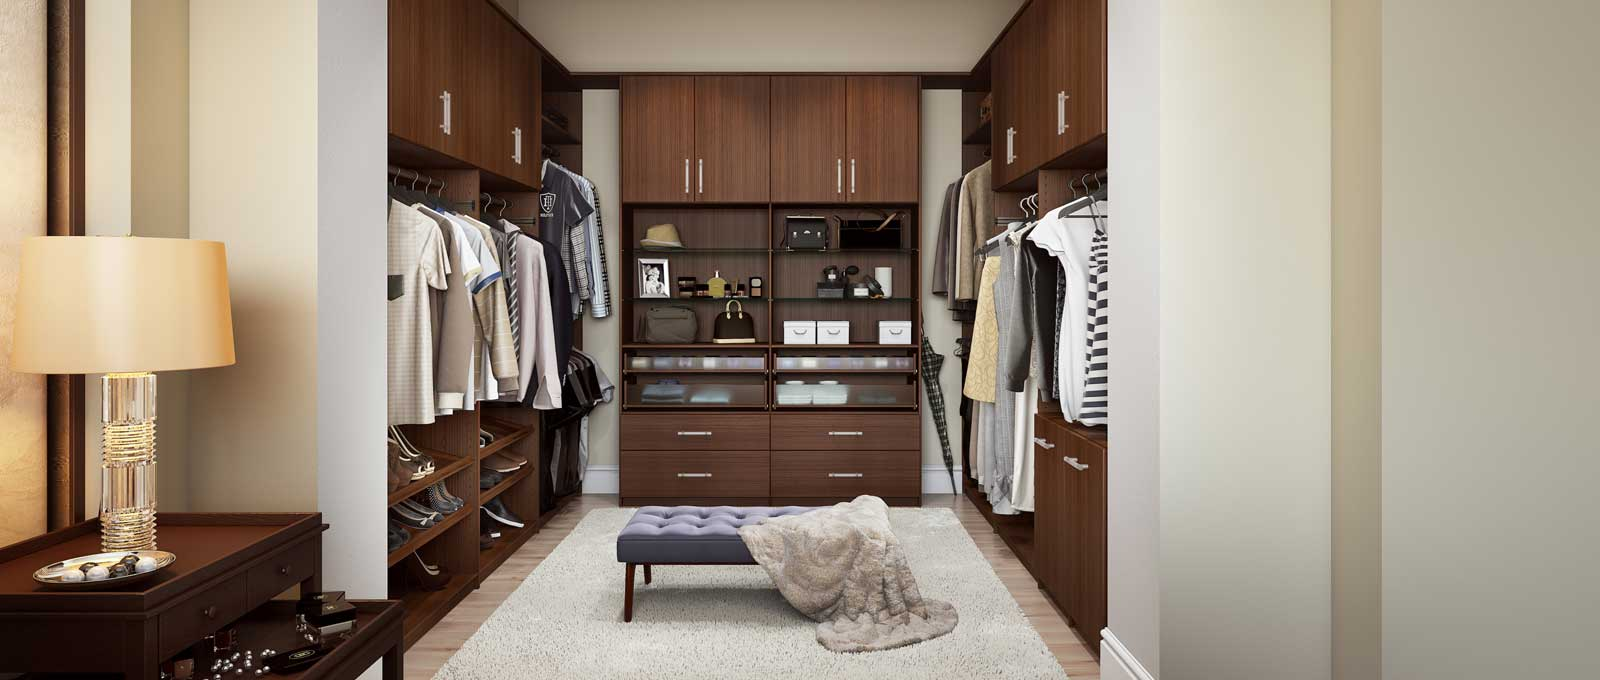 Custom Bedroom Closets and Closet Systems | Closet World